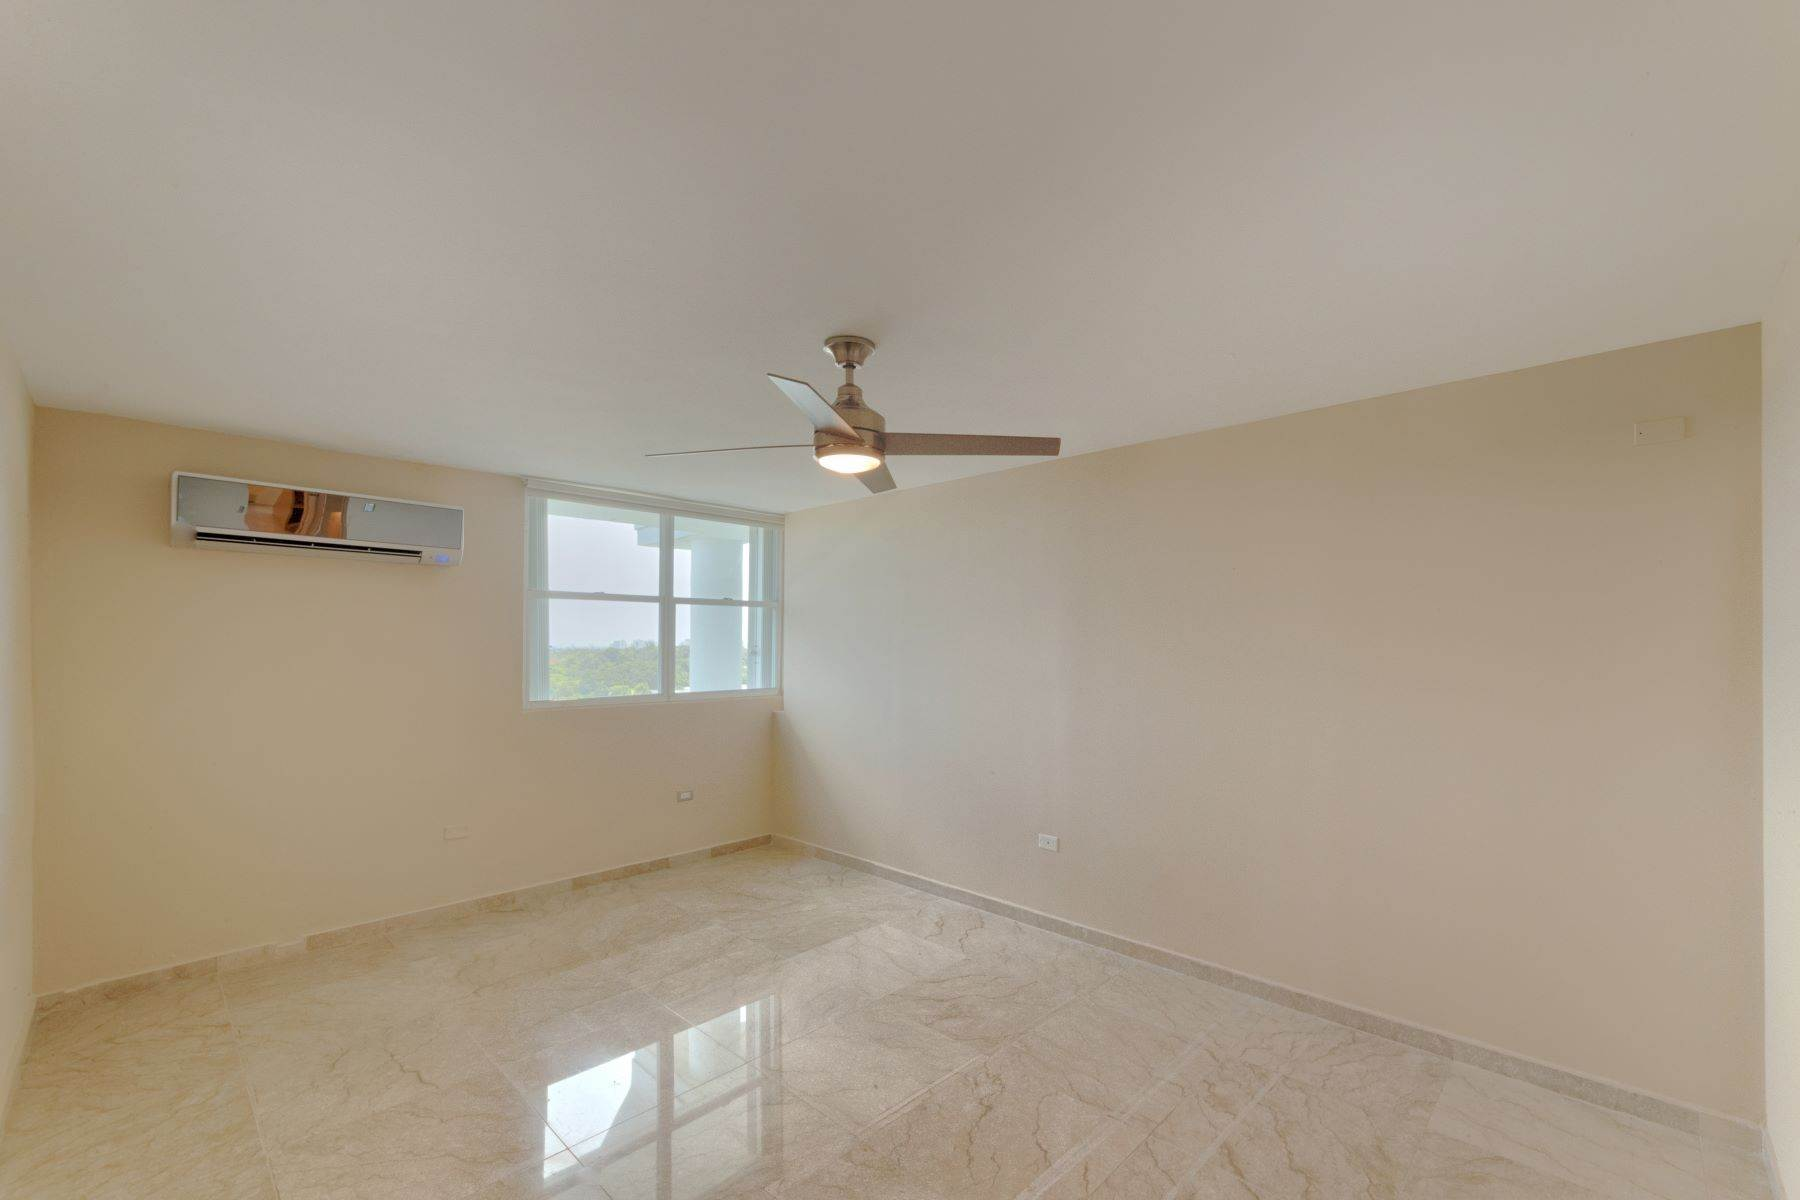 16. Condominiums for Sale at Stunning Duplex PH with Scenic Views in Portofino 5 Palm Circle St., Apt. 16 PH-A Guaynabo, 00969 Puerto Rico